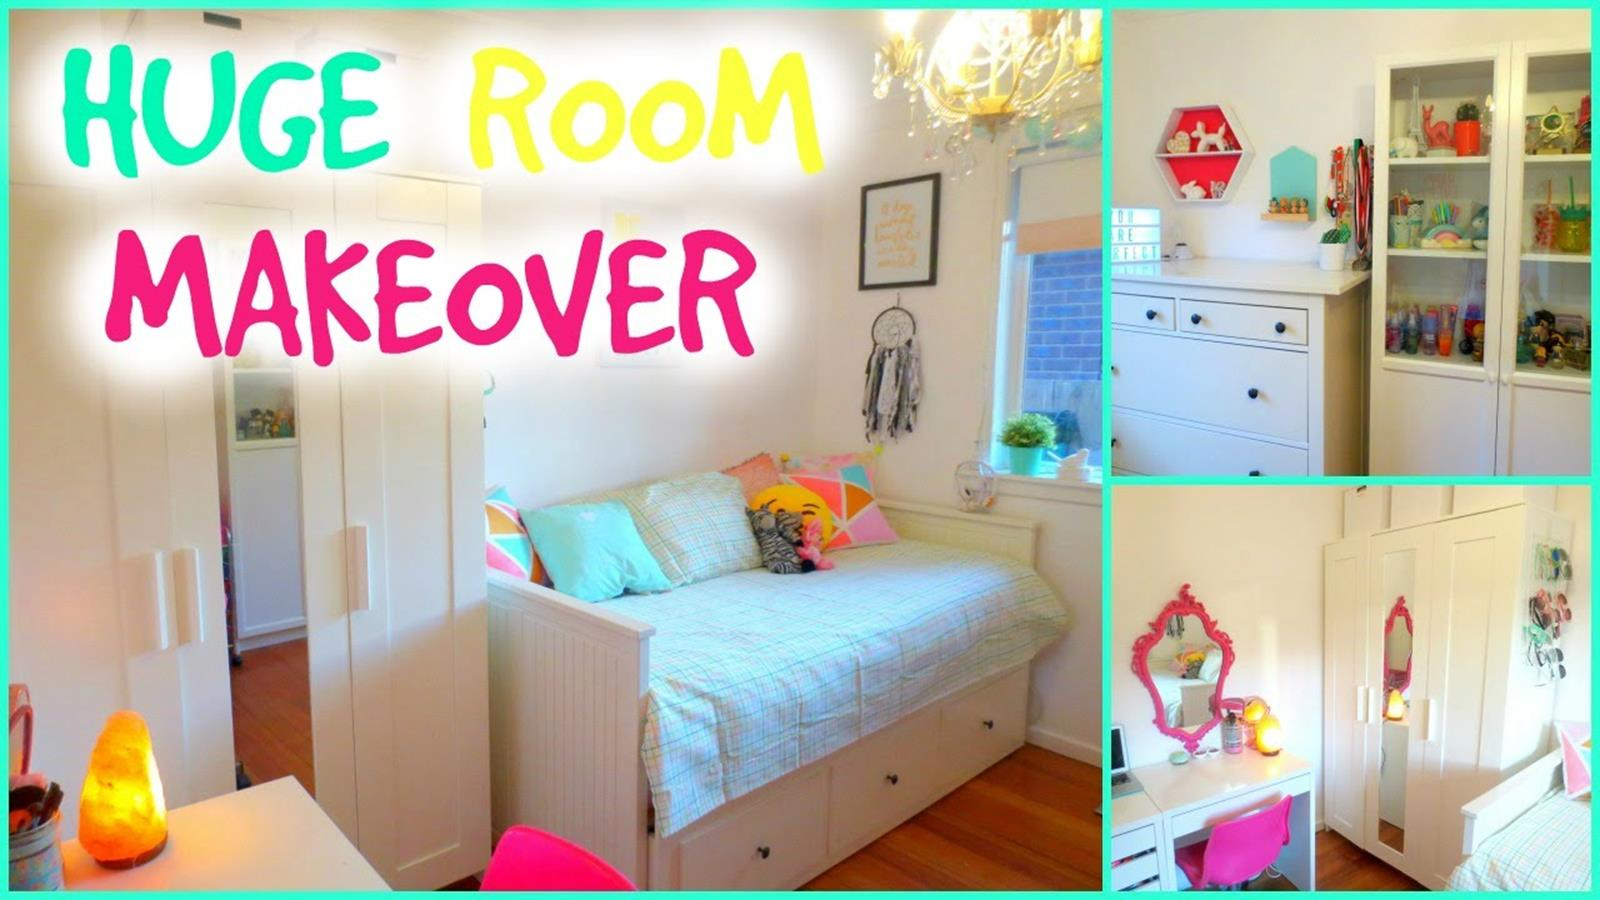 DIY Small Bedroom Makeover On a Budget 25